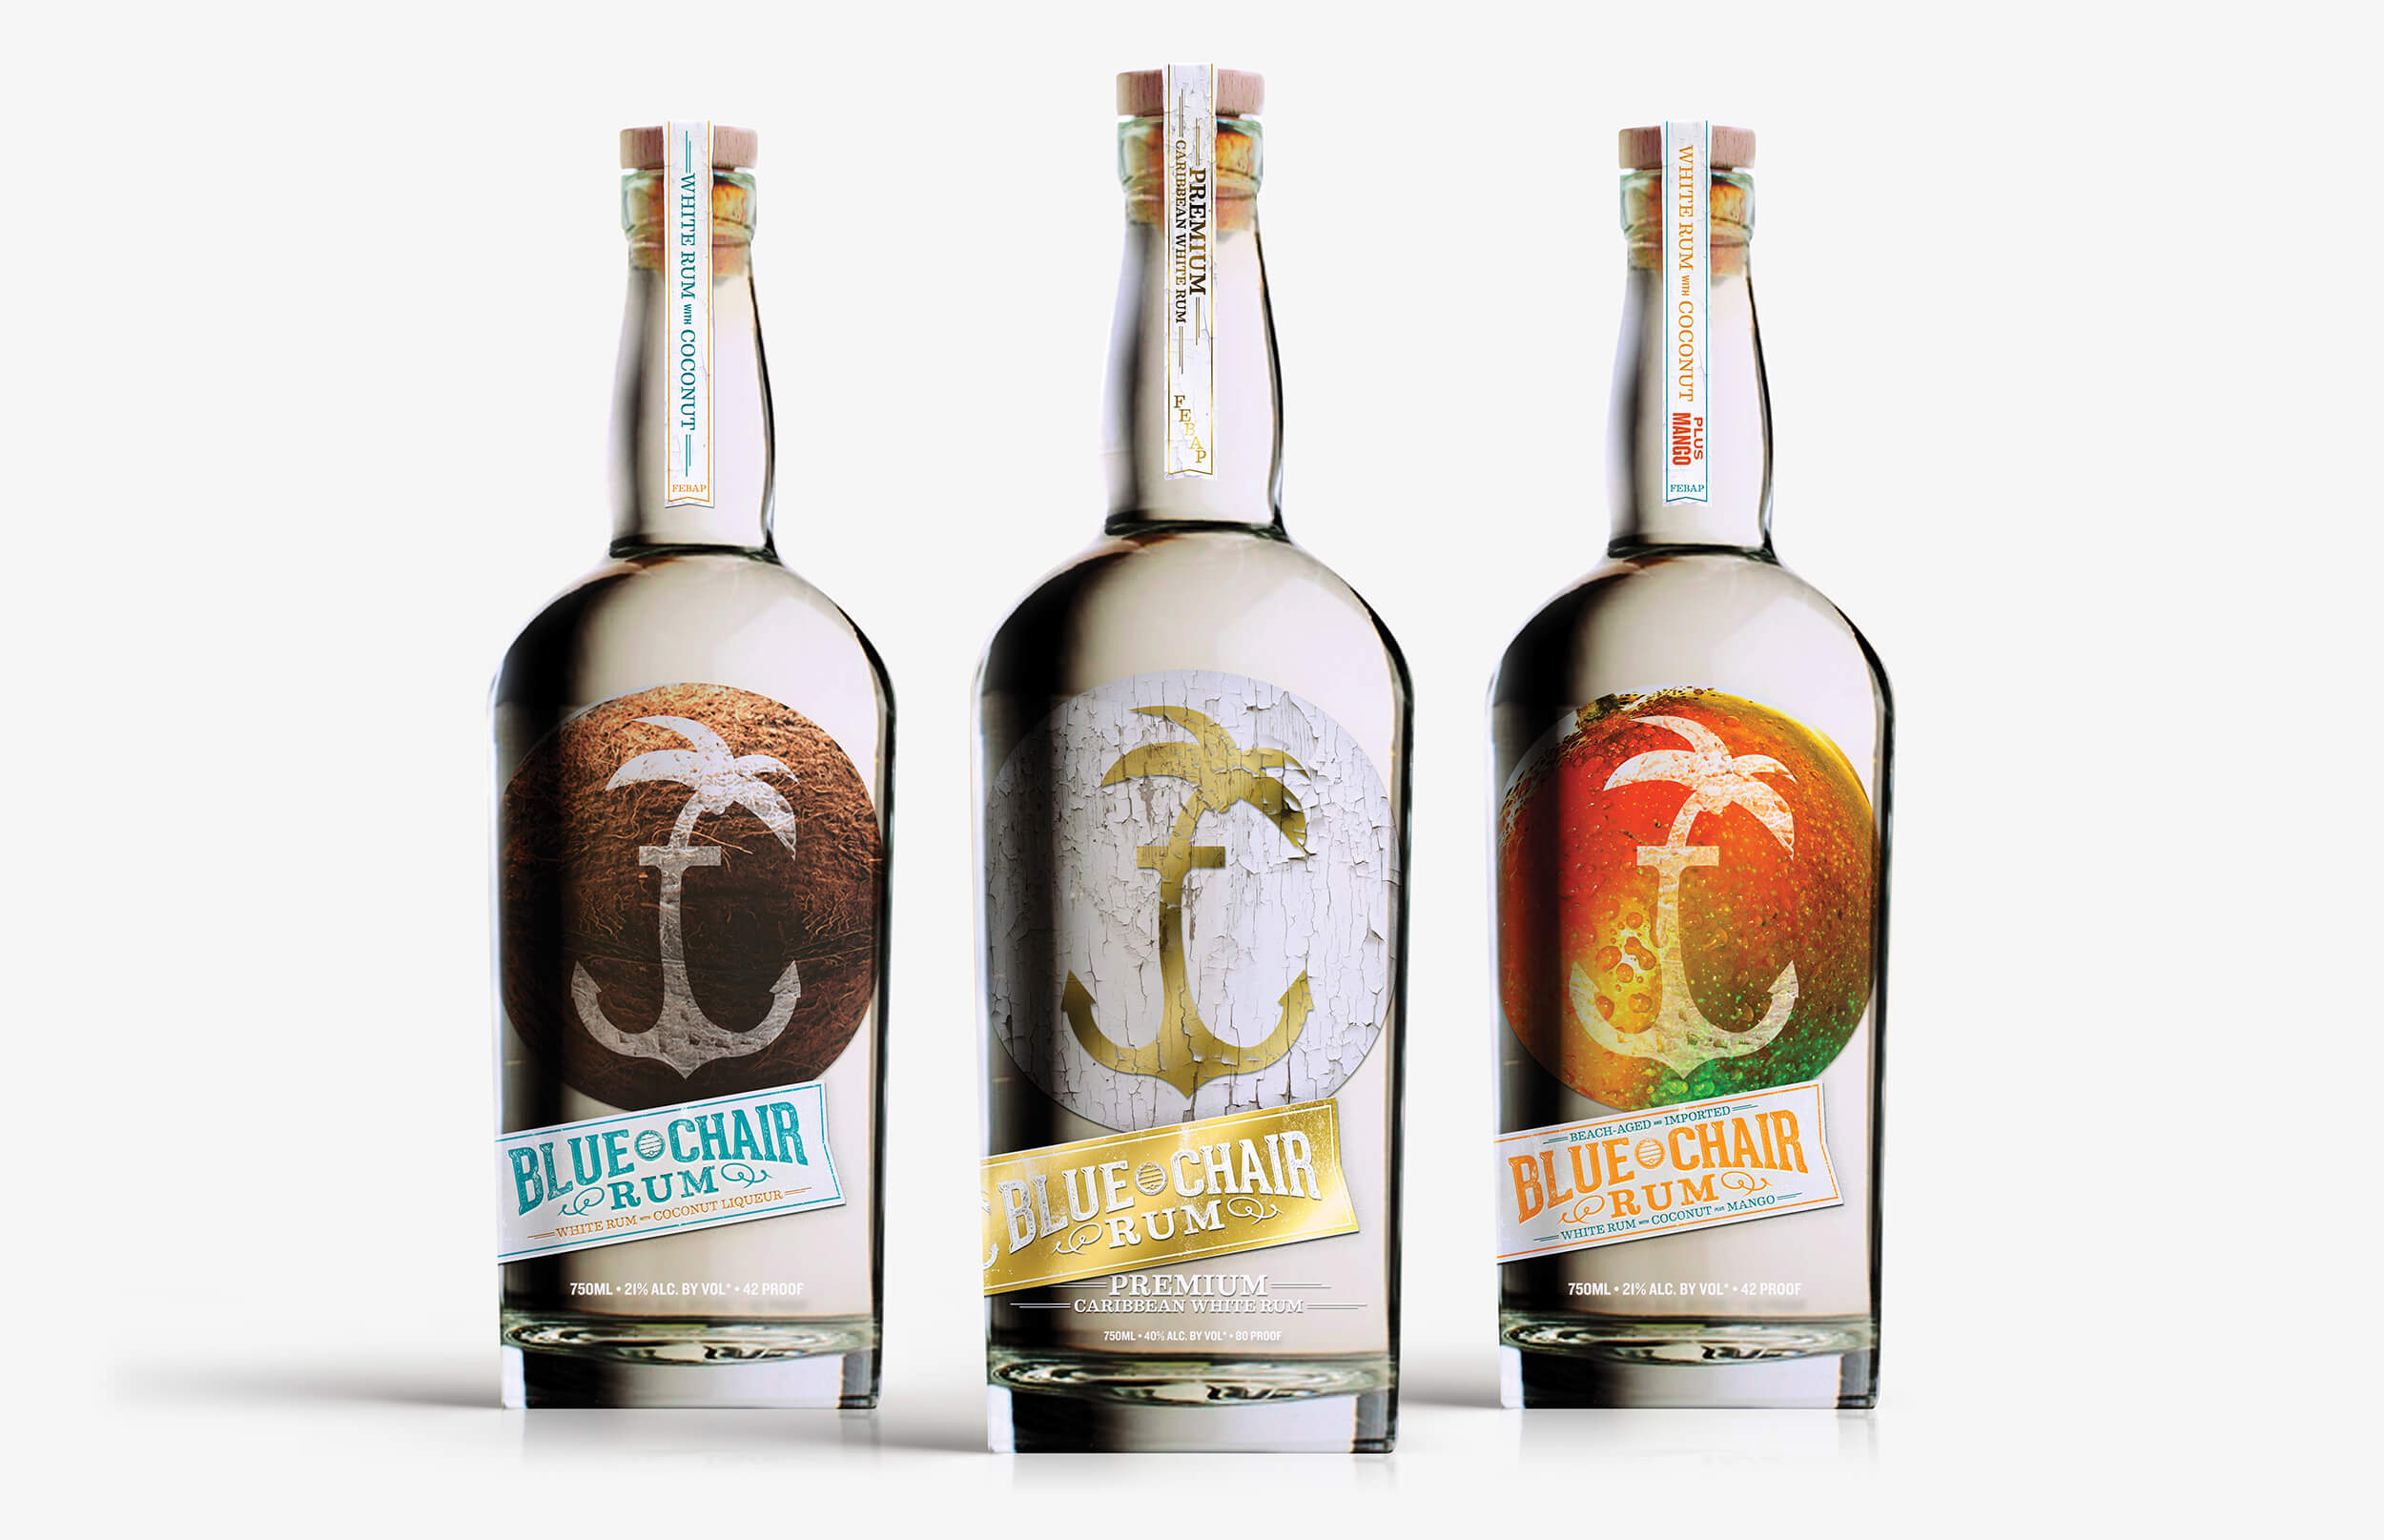 Blue Chair Bay Rum Blue Chair Bay Rum Explorations St8mnt Brand Agency